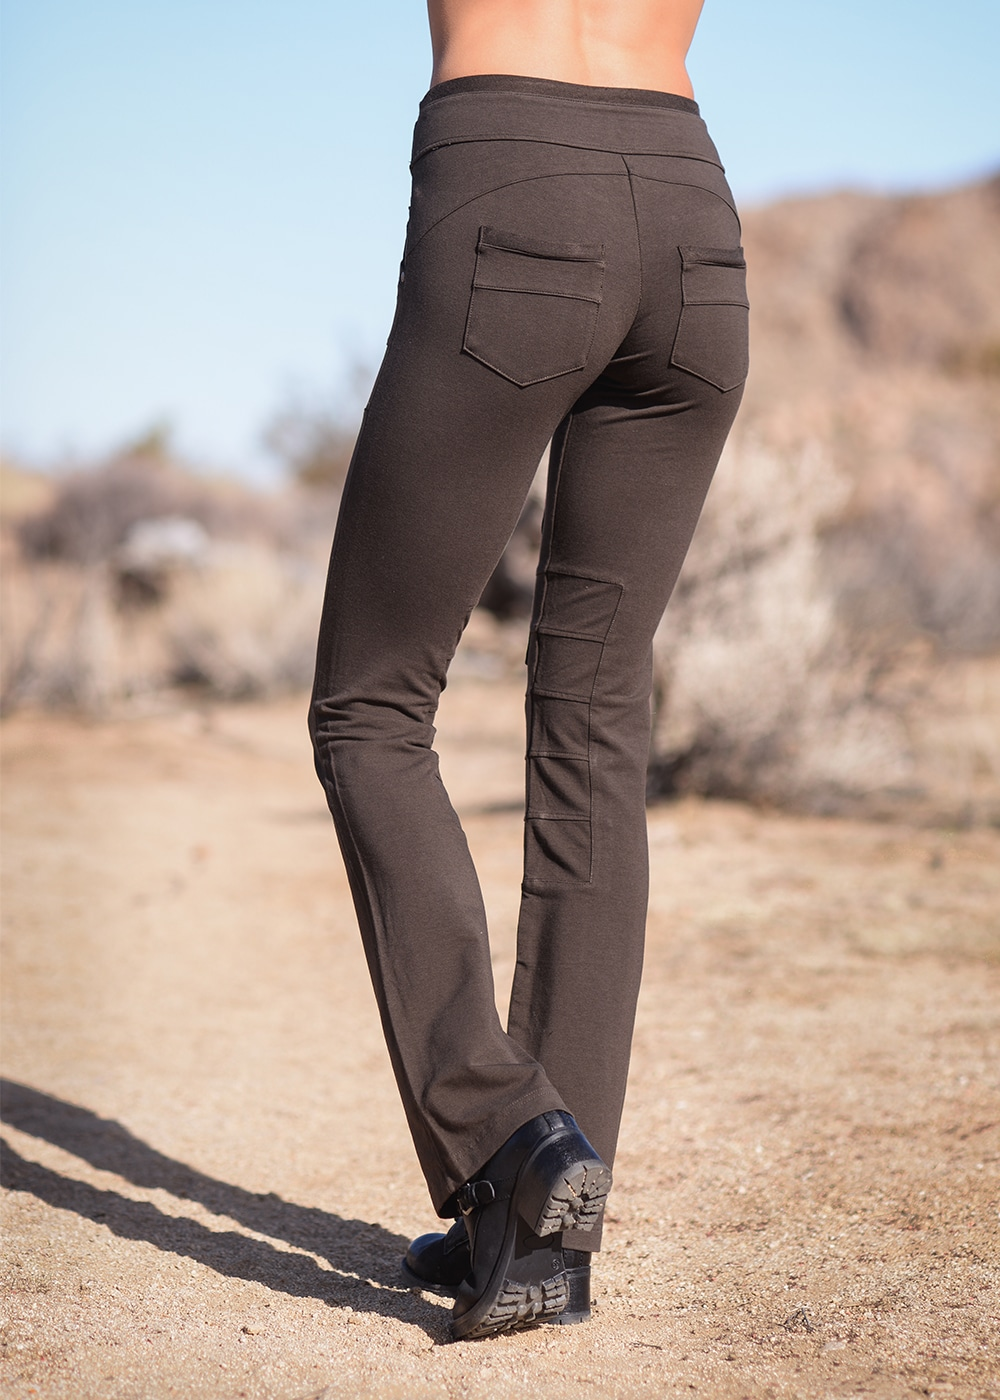 Bamboo and Organic Cotton Wander Pants in Brown by Nomads Hemp Wear Back